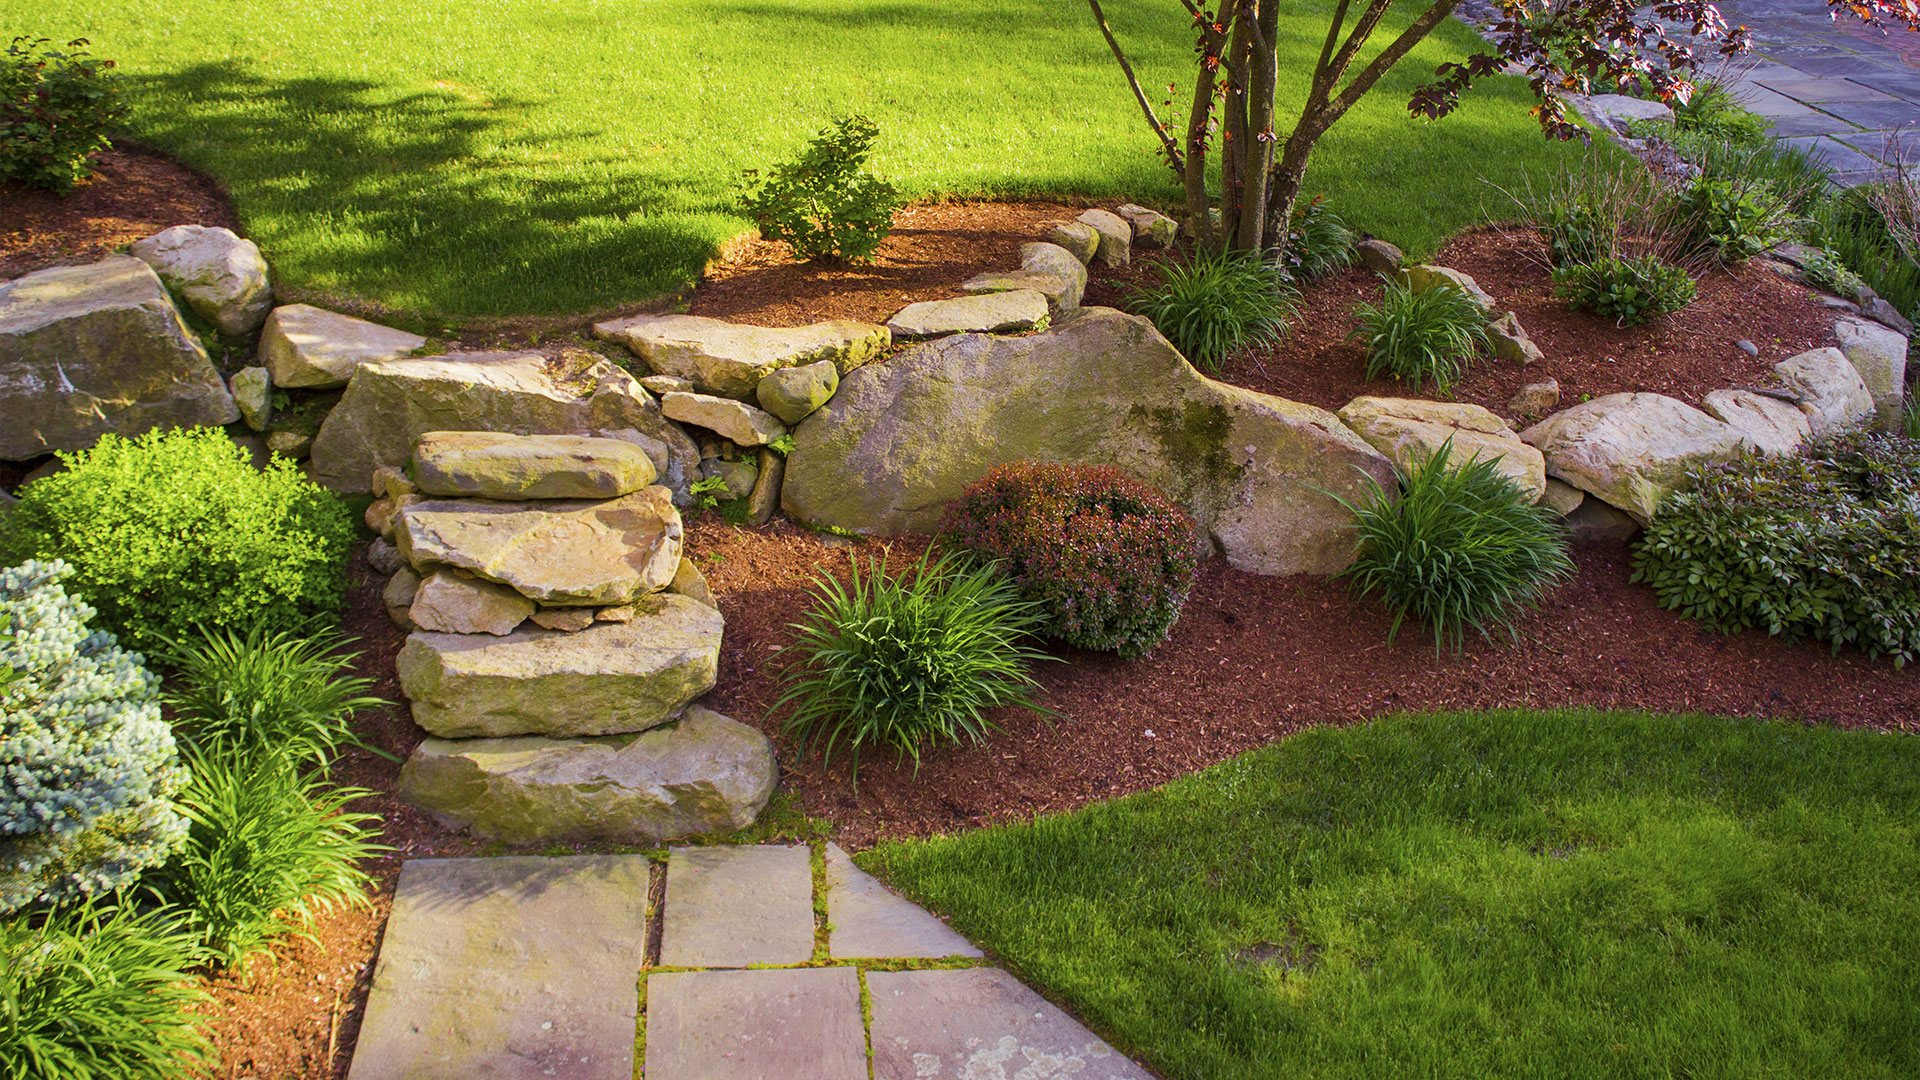 Home glen allen landscaping weed control and lawn care for Landscape design photos